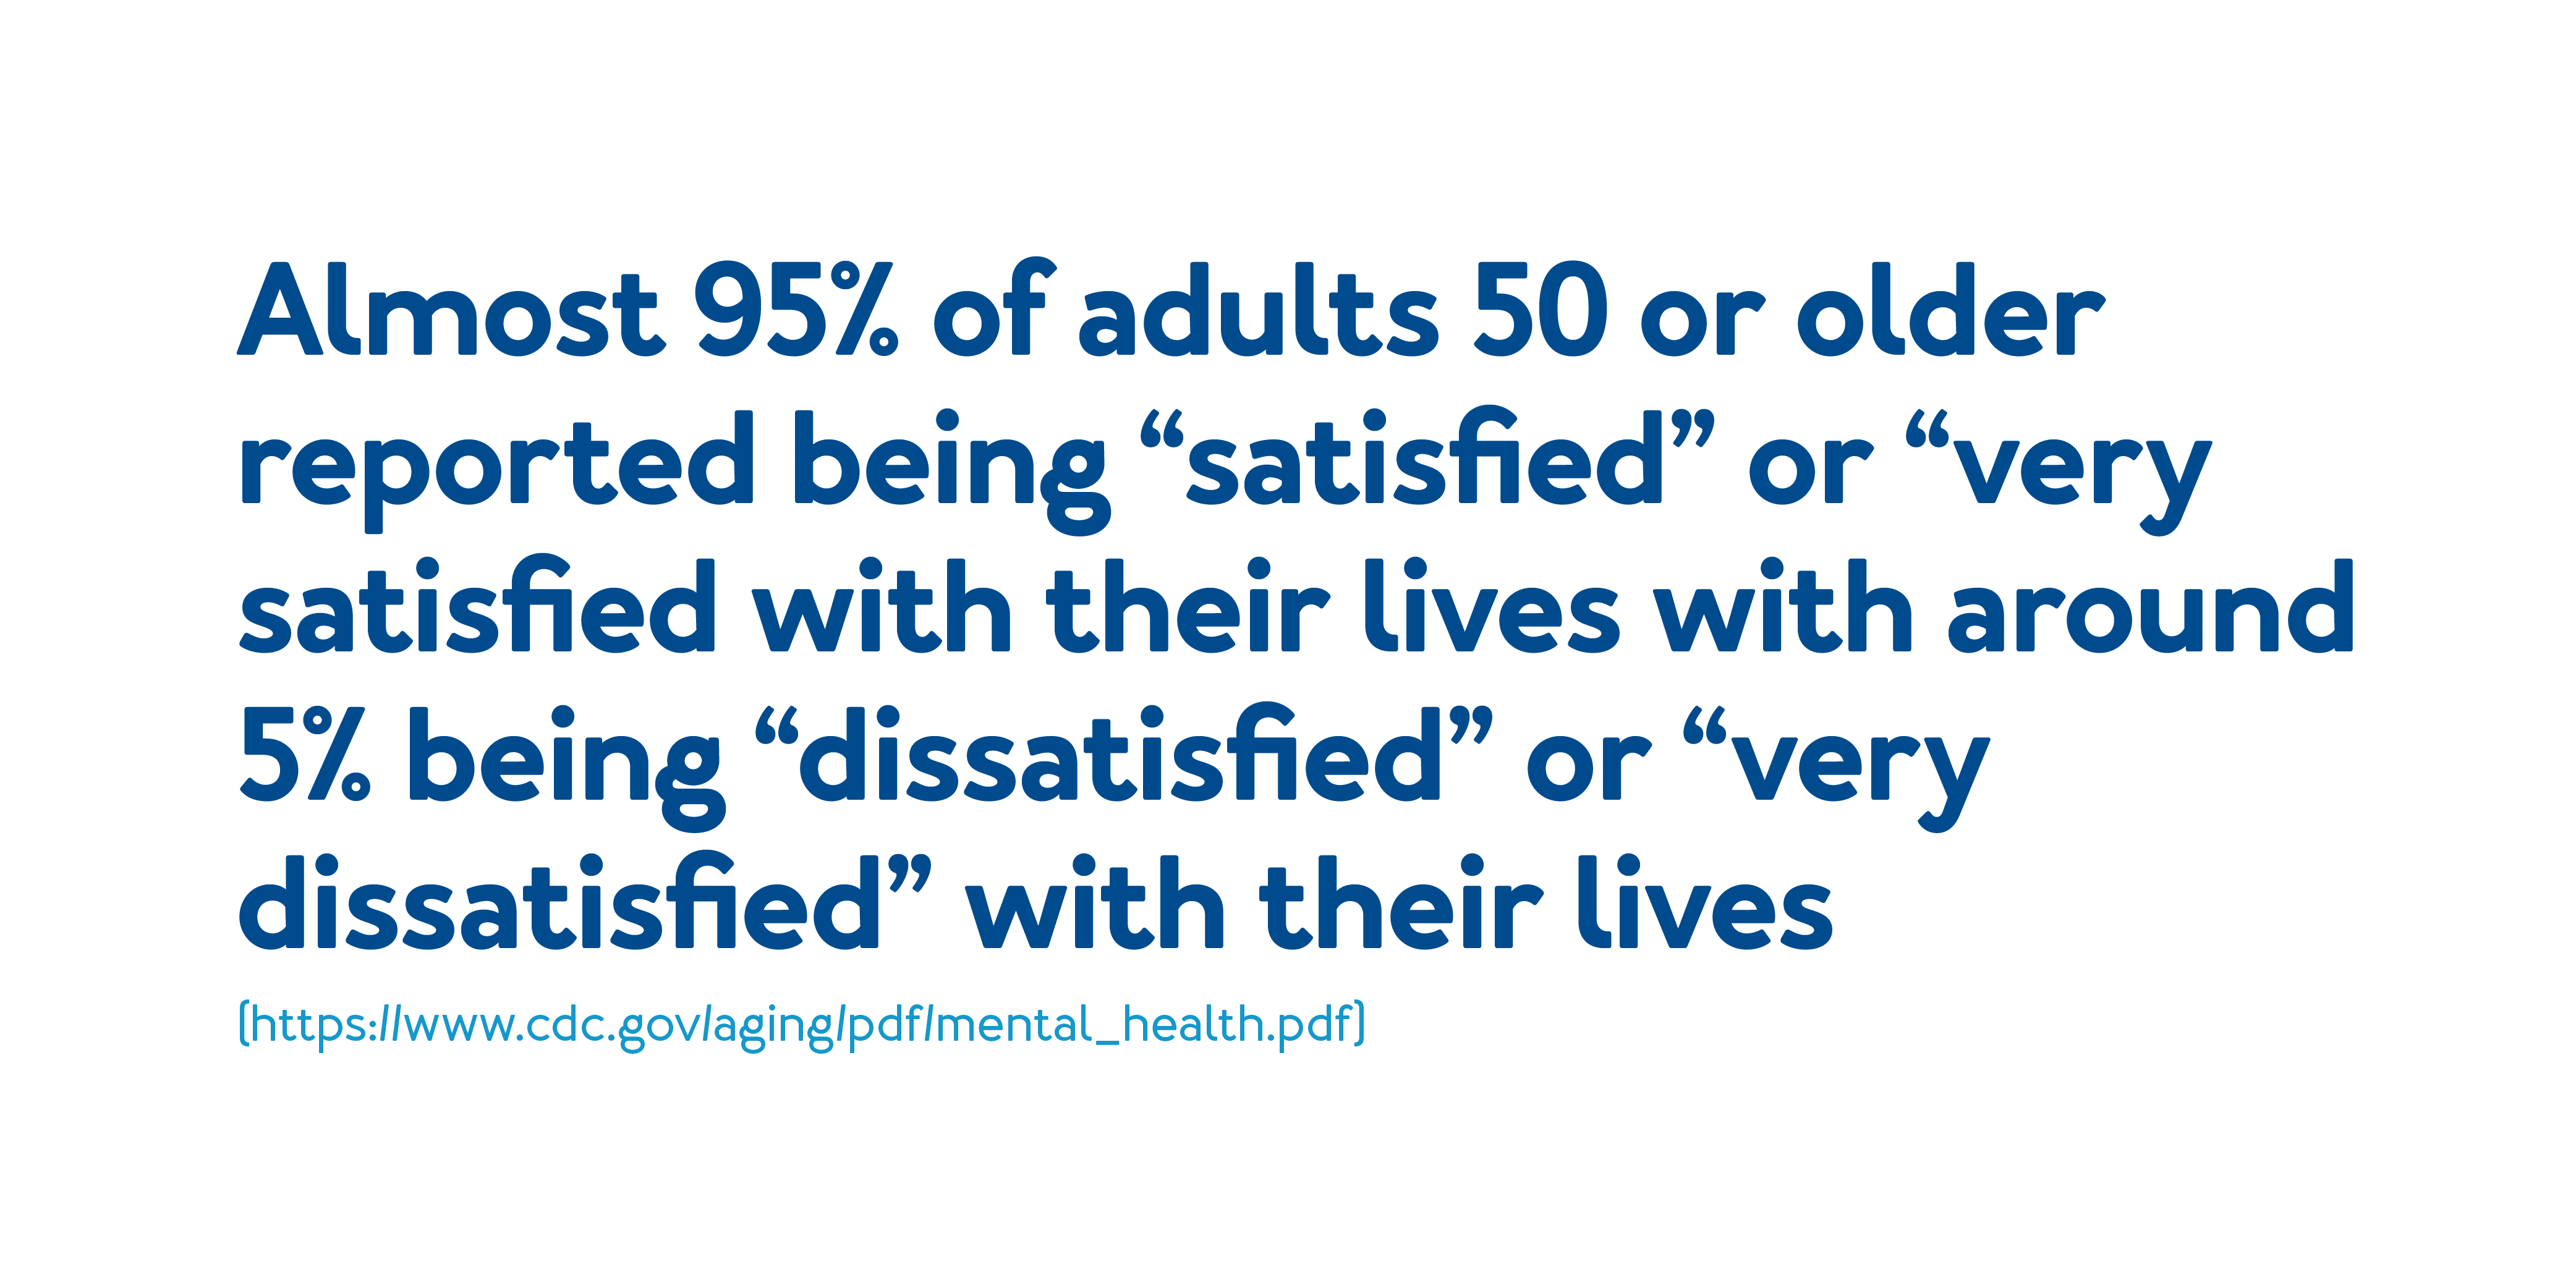 """Almost 95% of adults 50 or older reported being """"satisfied"""" or """"very satisfied with their lives with around 5% being """"dissatisfied"""" or """"very dissatisfied"""" with their lives."""